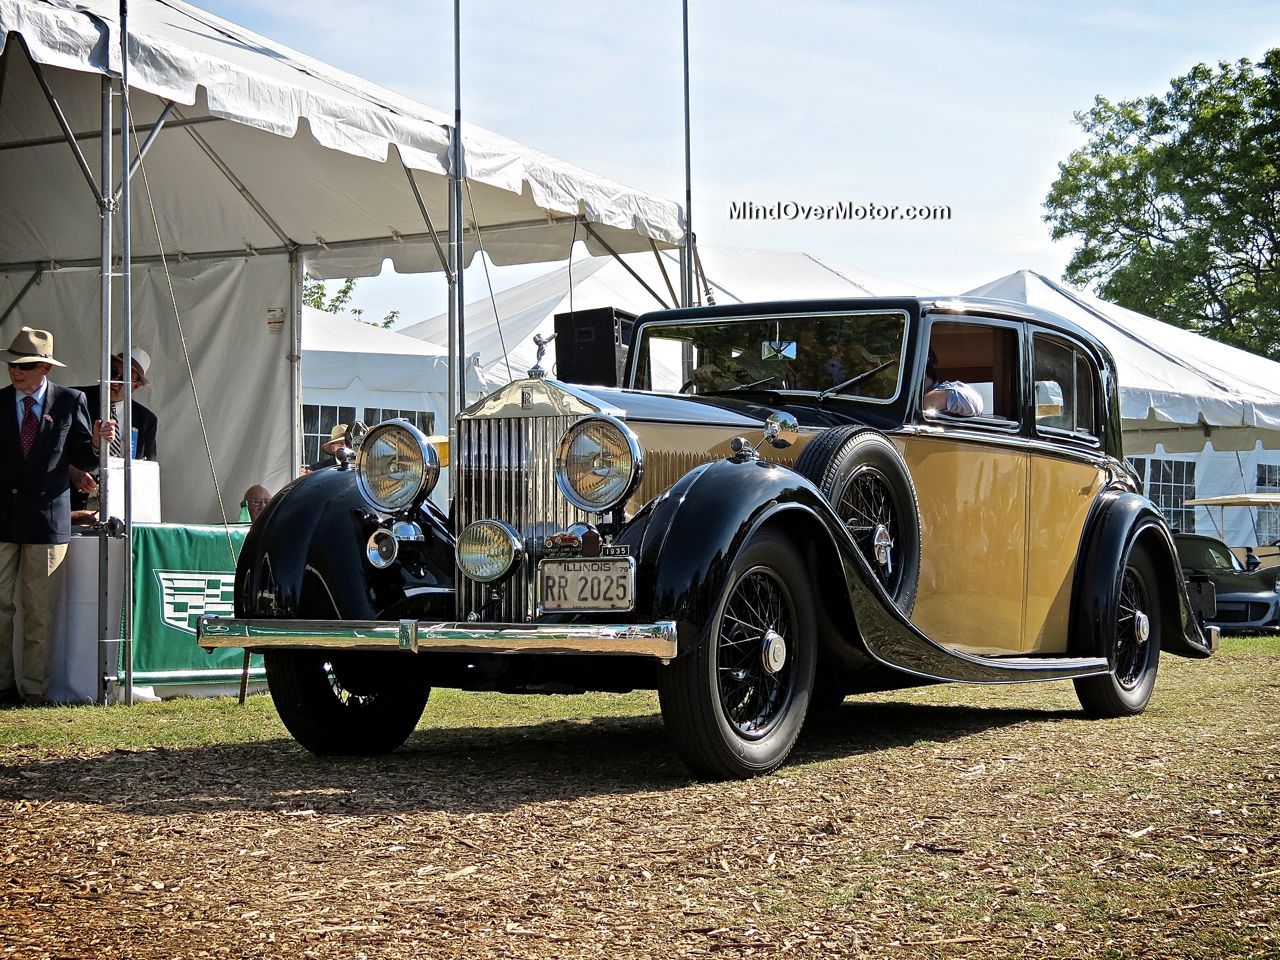 1935 Rolls Royce 20/25 at the Greenwich Concours d'Elegance